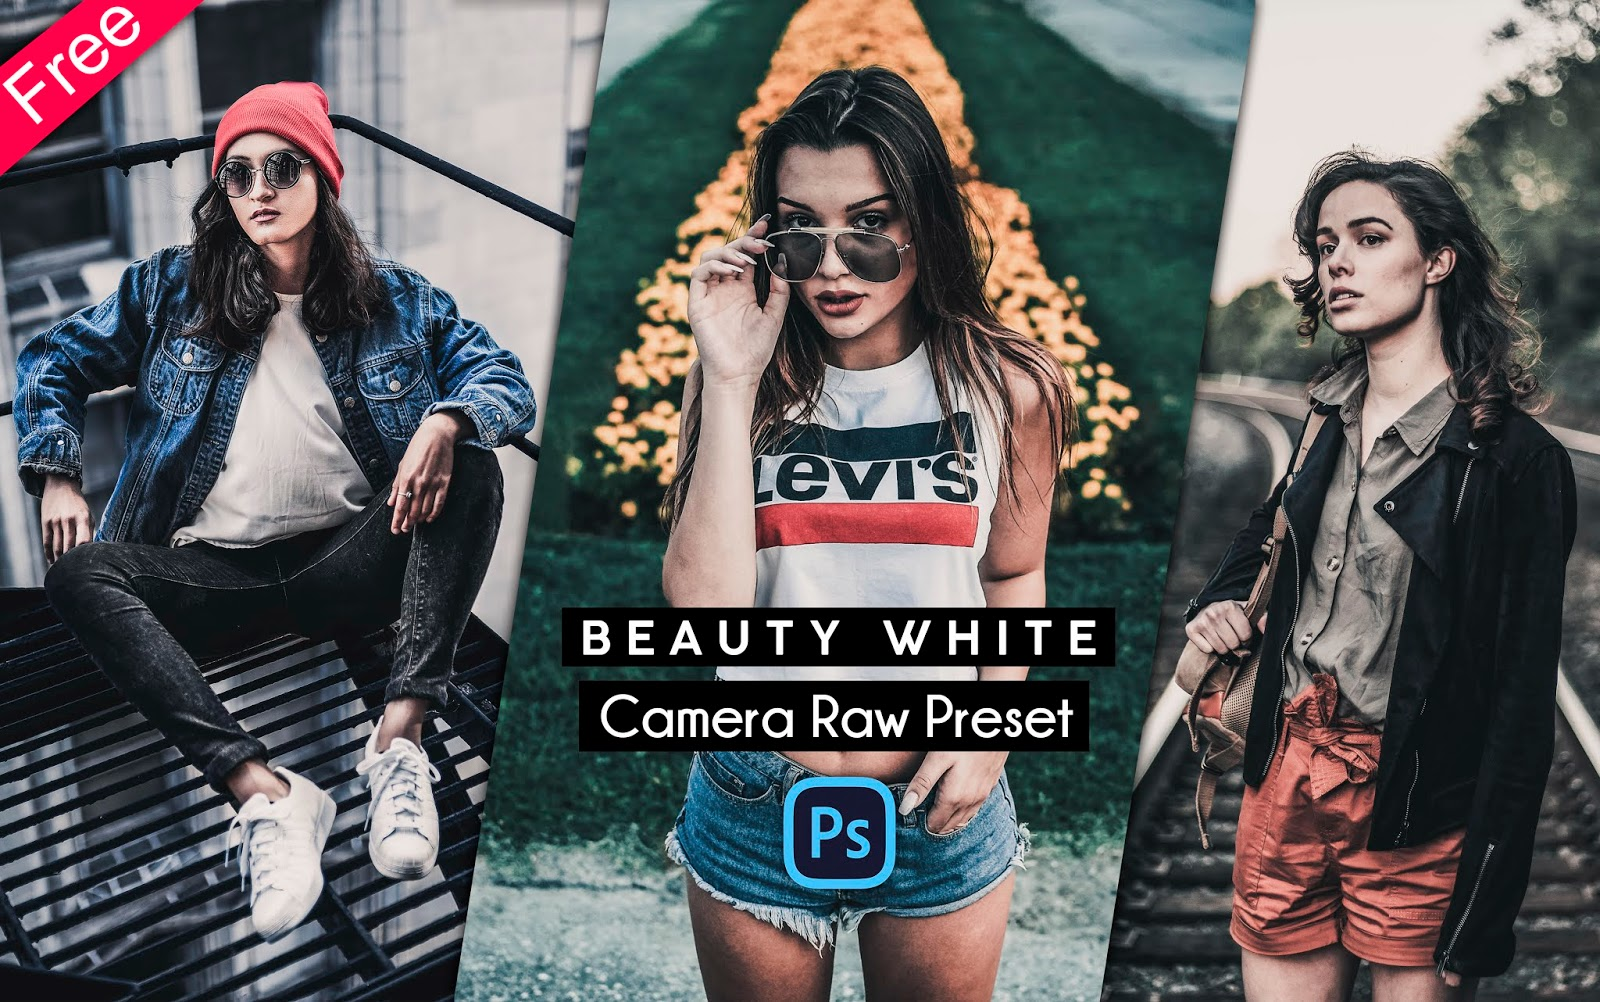 Download Beauty White Camera Raw Presets for Free   Beauty White Instagram Filter Free Download